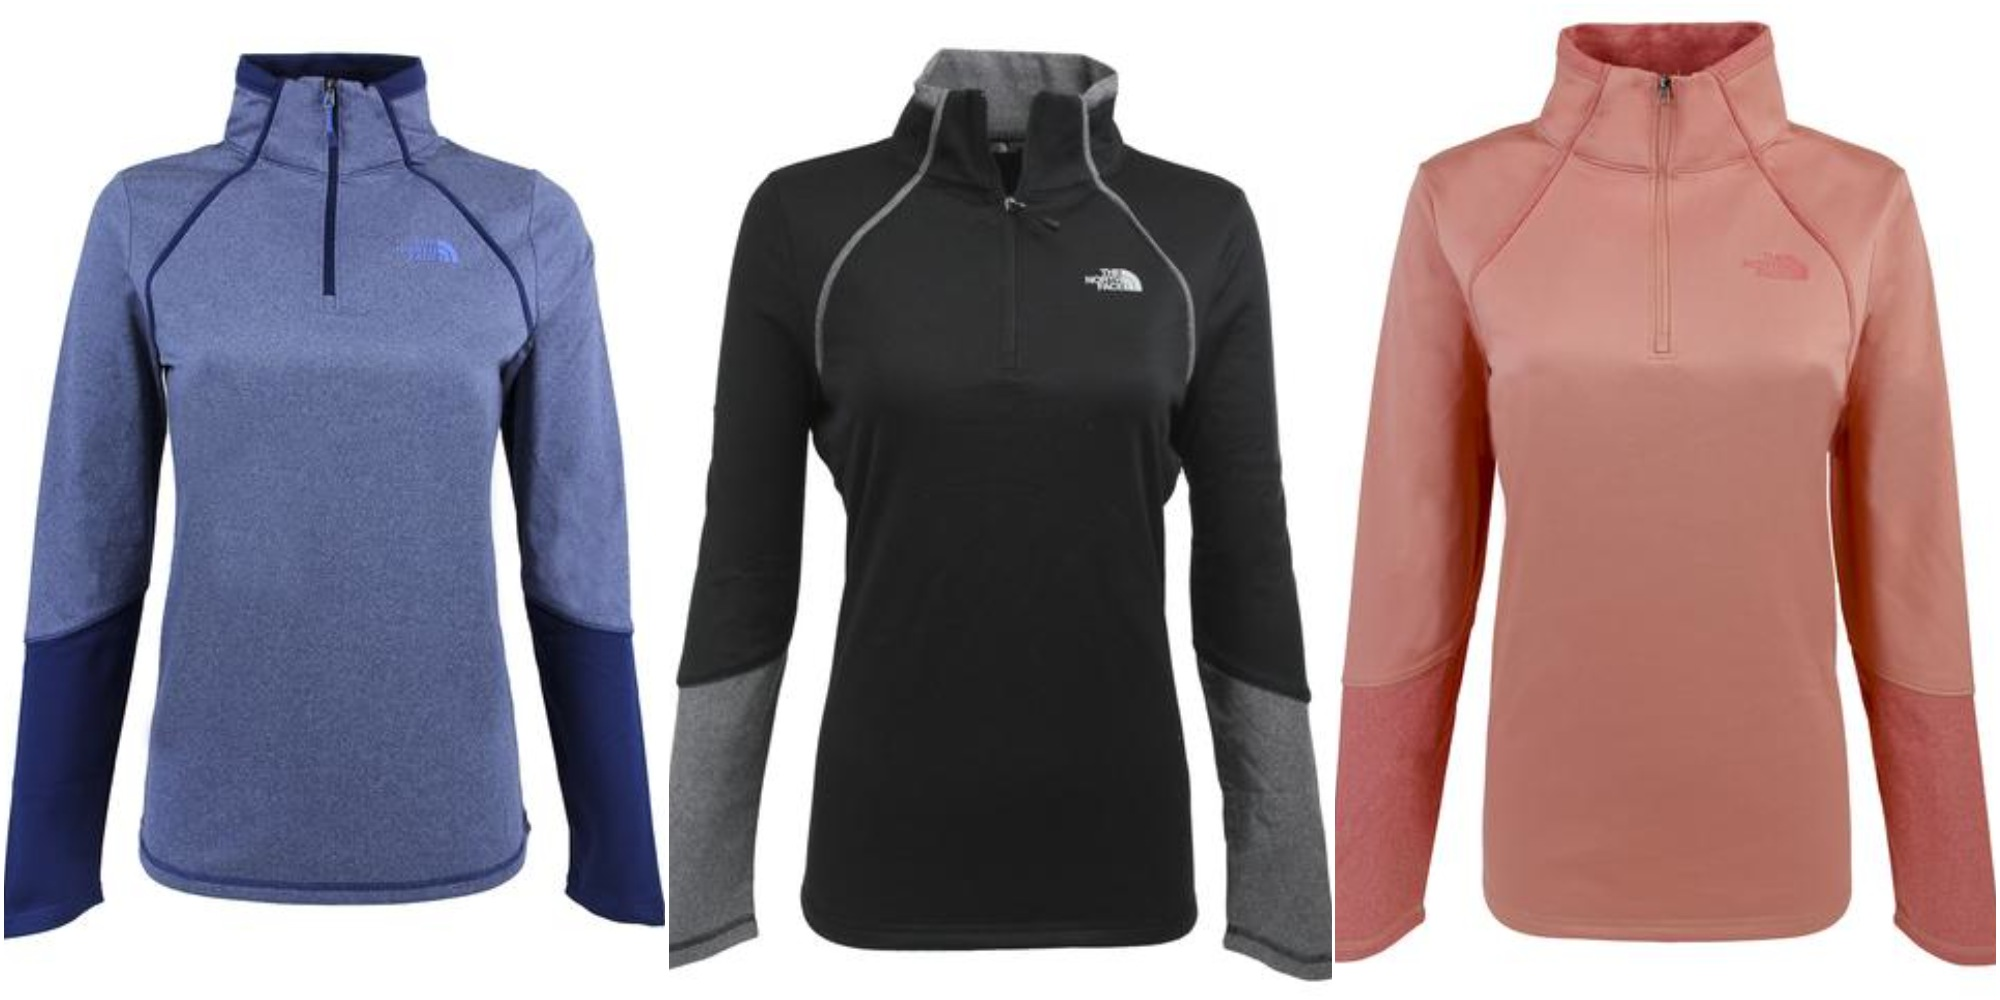 03ed0bc52 Get a North Face Women's 100 Cinder 1/4 Zip Pullover for just $38 ...